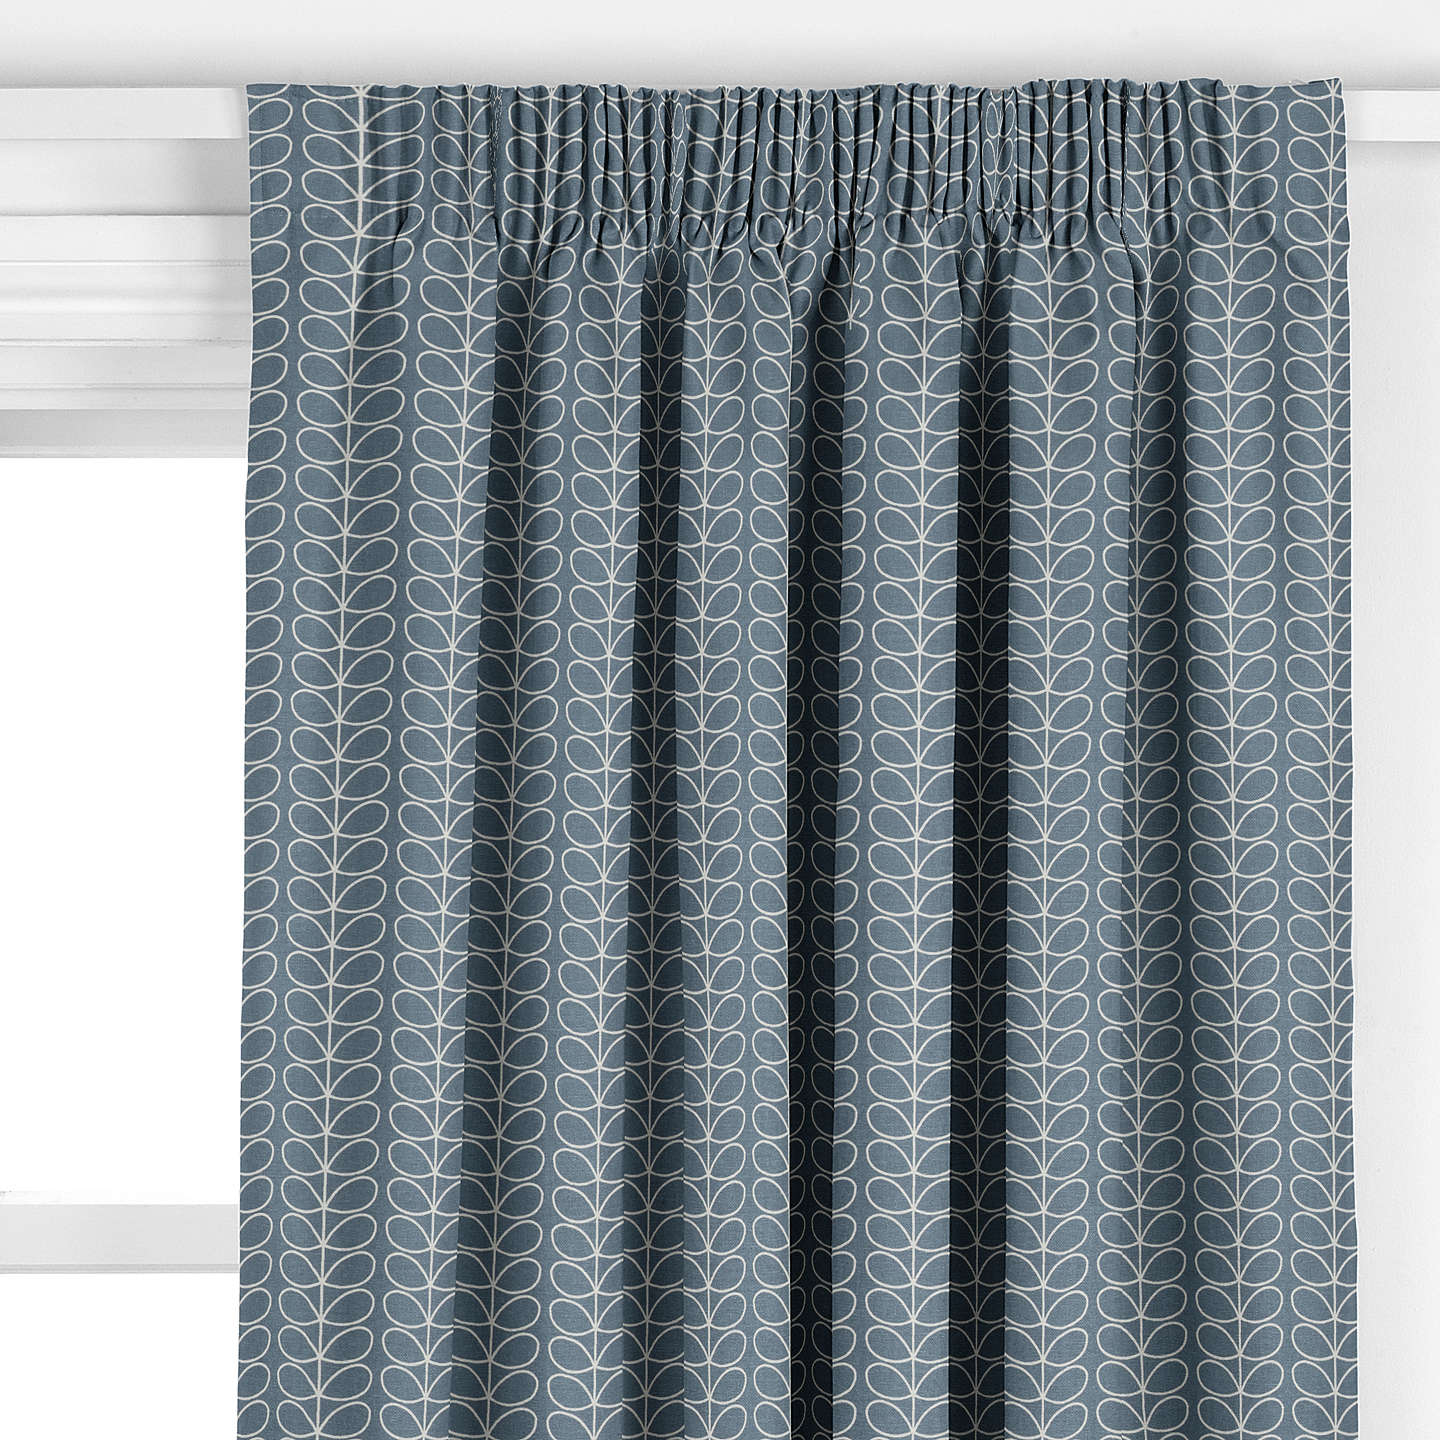 ecofreidnly curtains grey linenpolyester p classic linen panels polyester freidnly blend eco blackout buy two